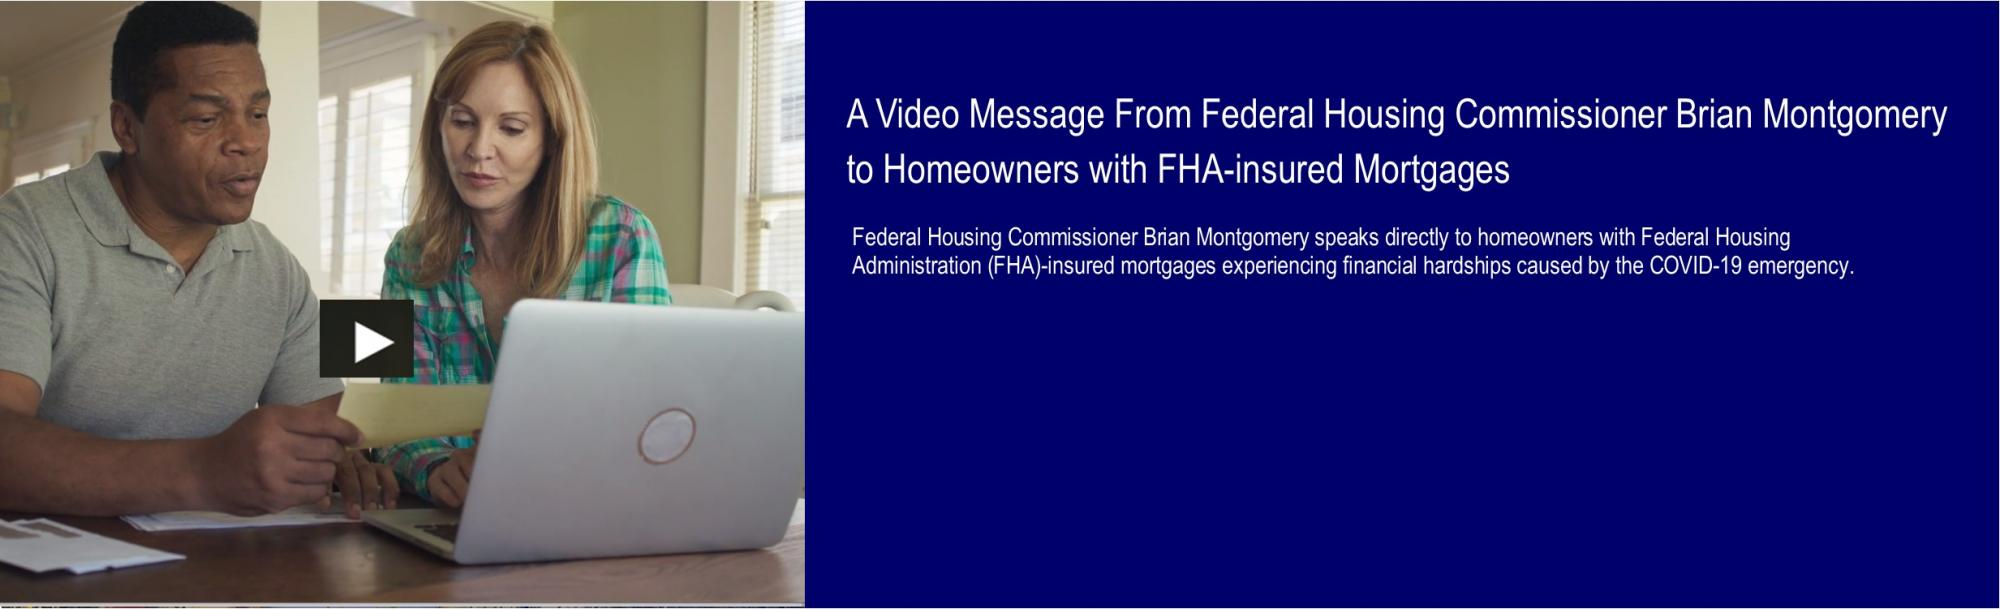 [A Video Message From Federal Housing Commissioner Brian Montgomery to Homeowners with FHA-insured Mortgages].